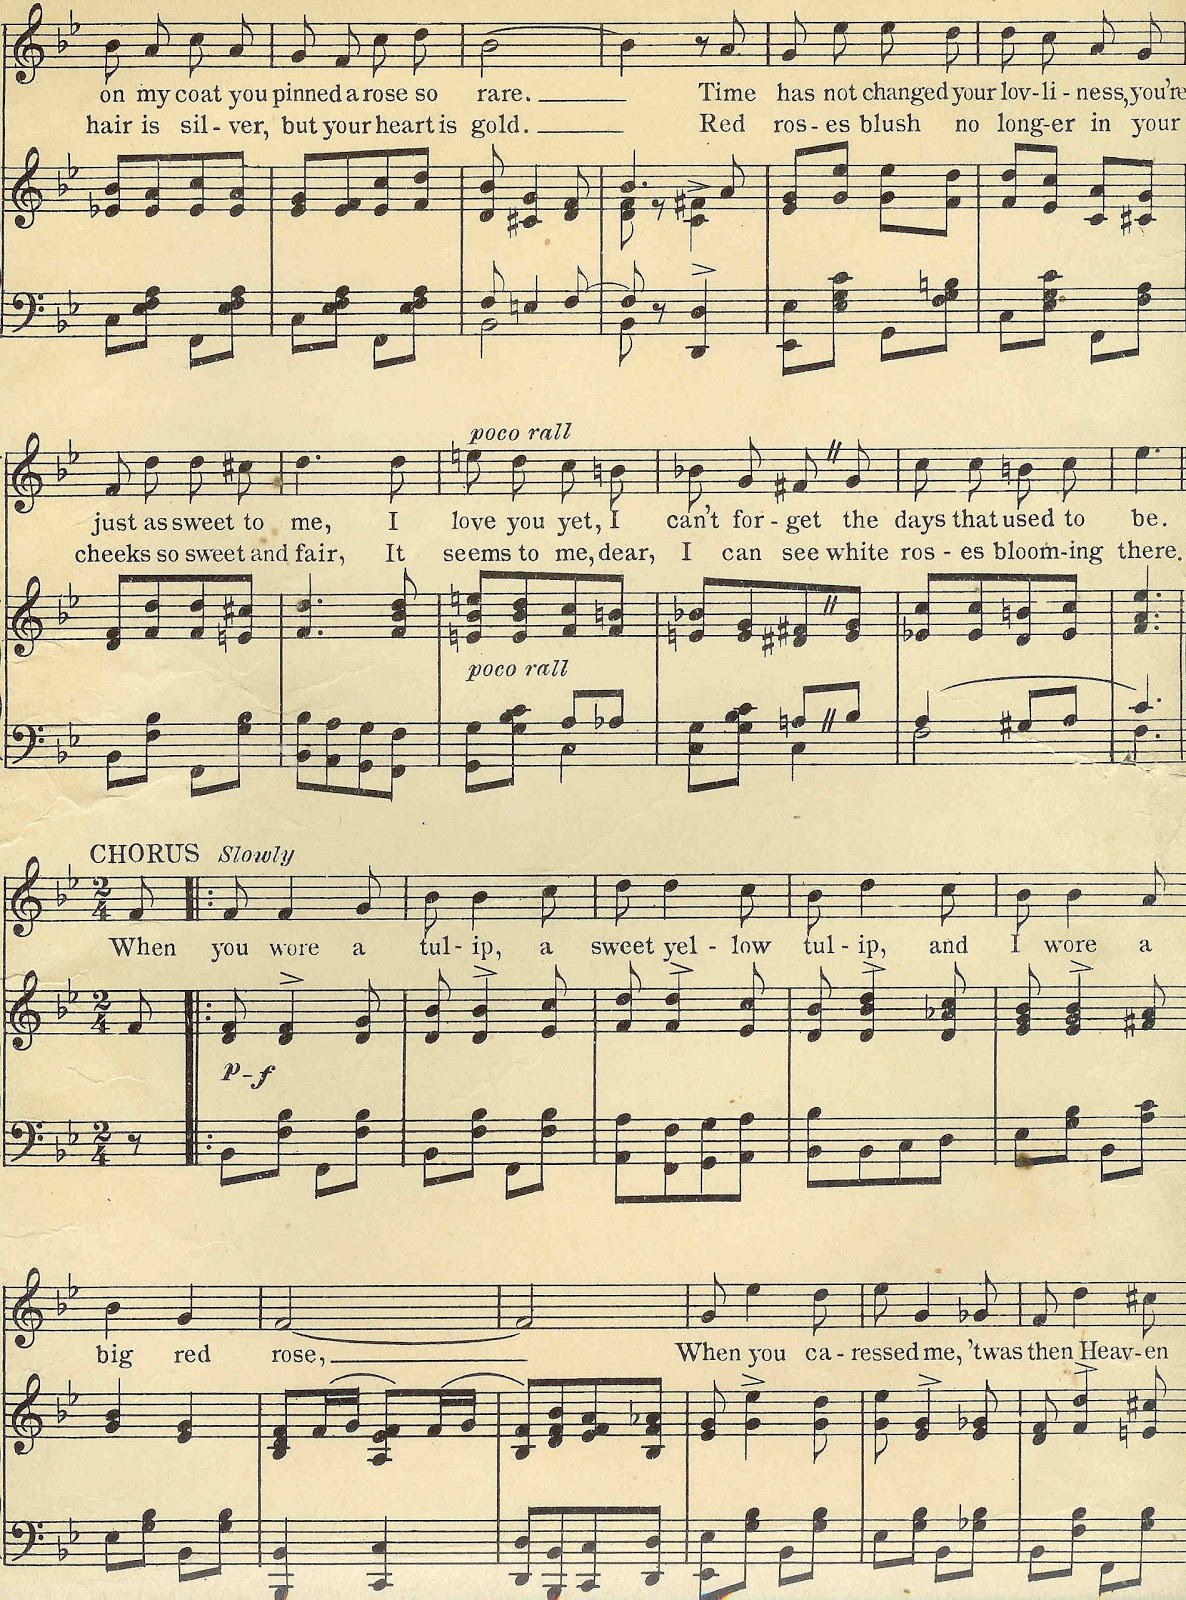 Antique Images Digital Background Of She-Antique Images Digital Background Of Sheet Music Vintage Sheet Music-2